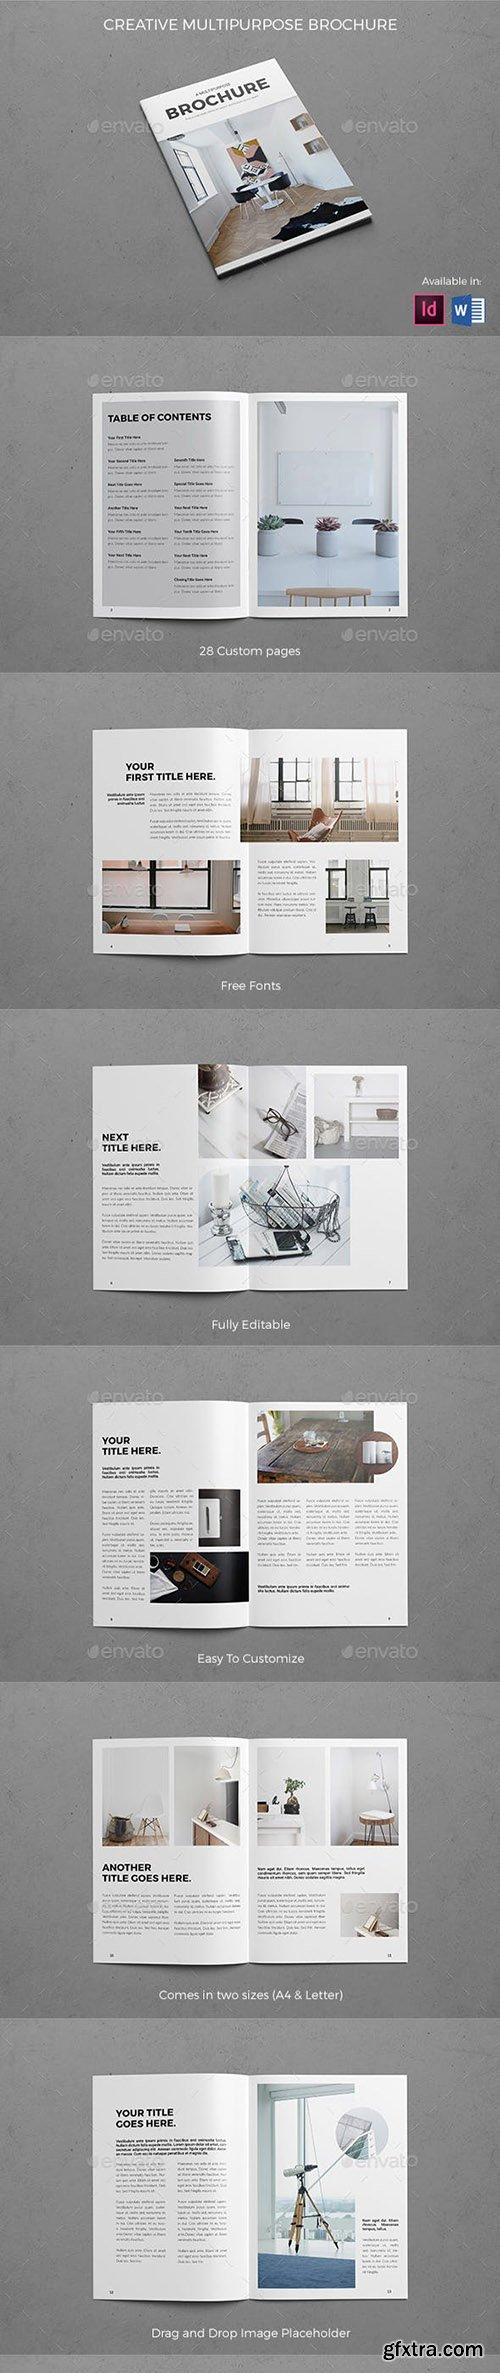 Creative Multipurpose Brochure 19626802